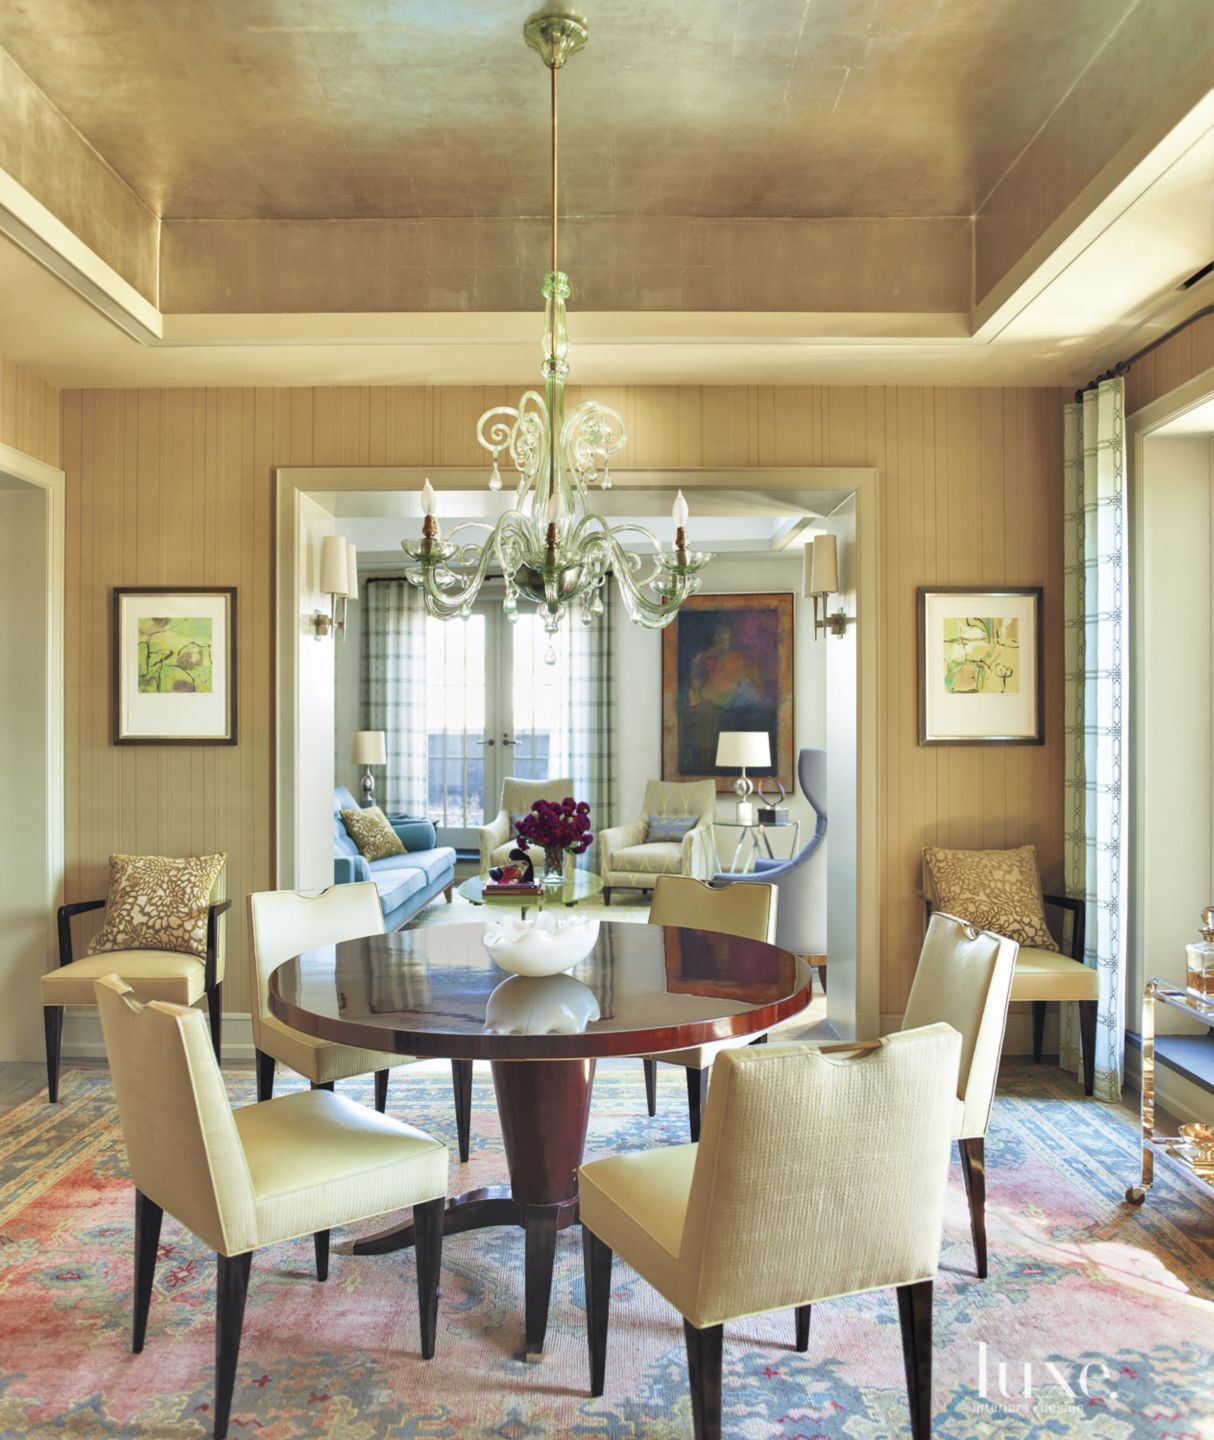 Contemporary Gold Dining Room with Vintage Table